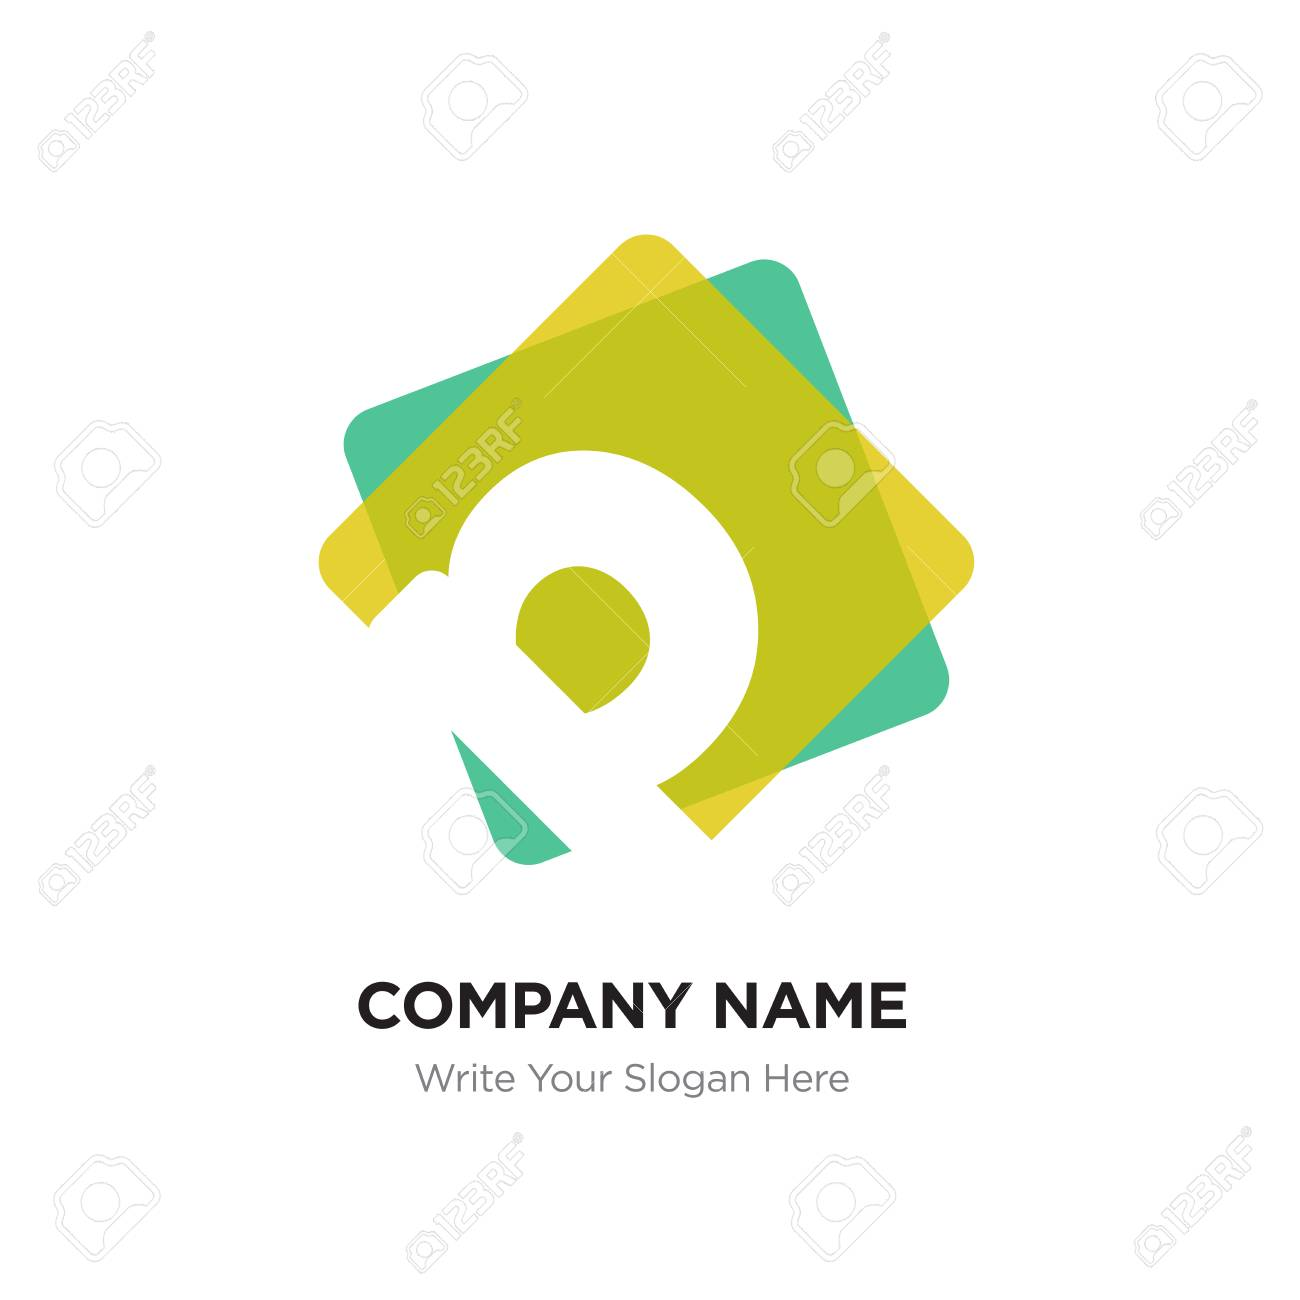 abstract letter p logo design template white vector icon on yellow green background